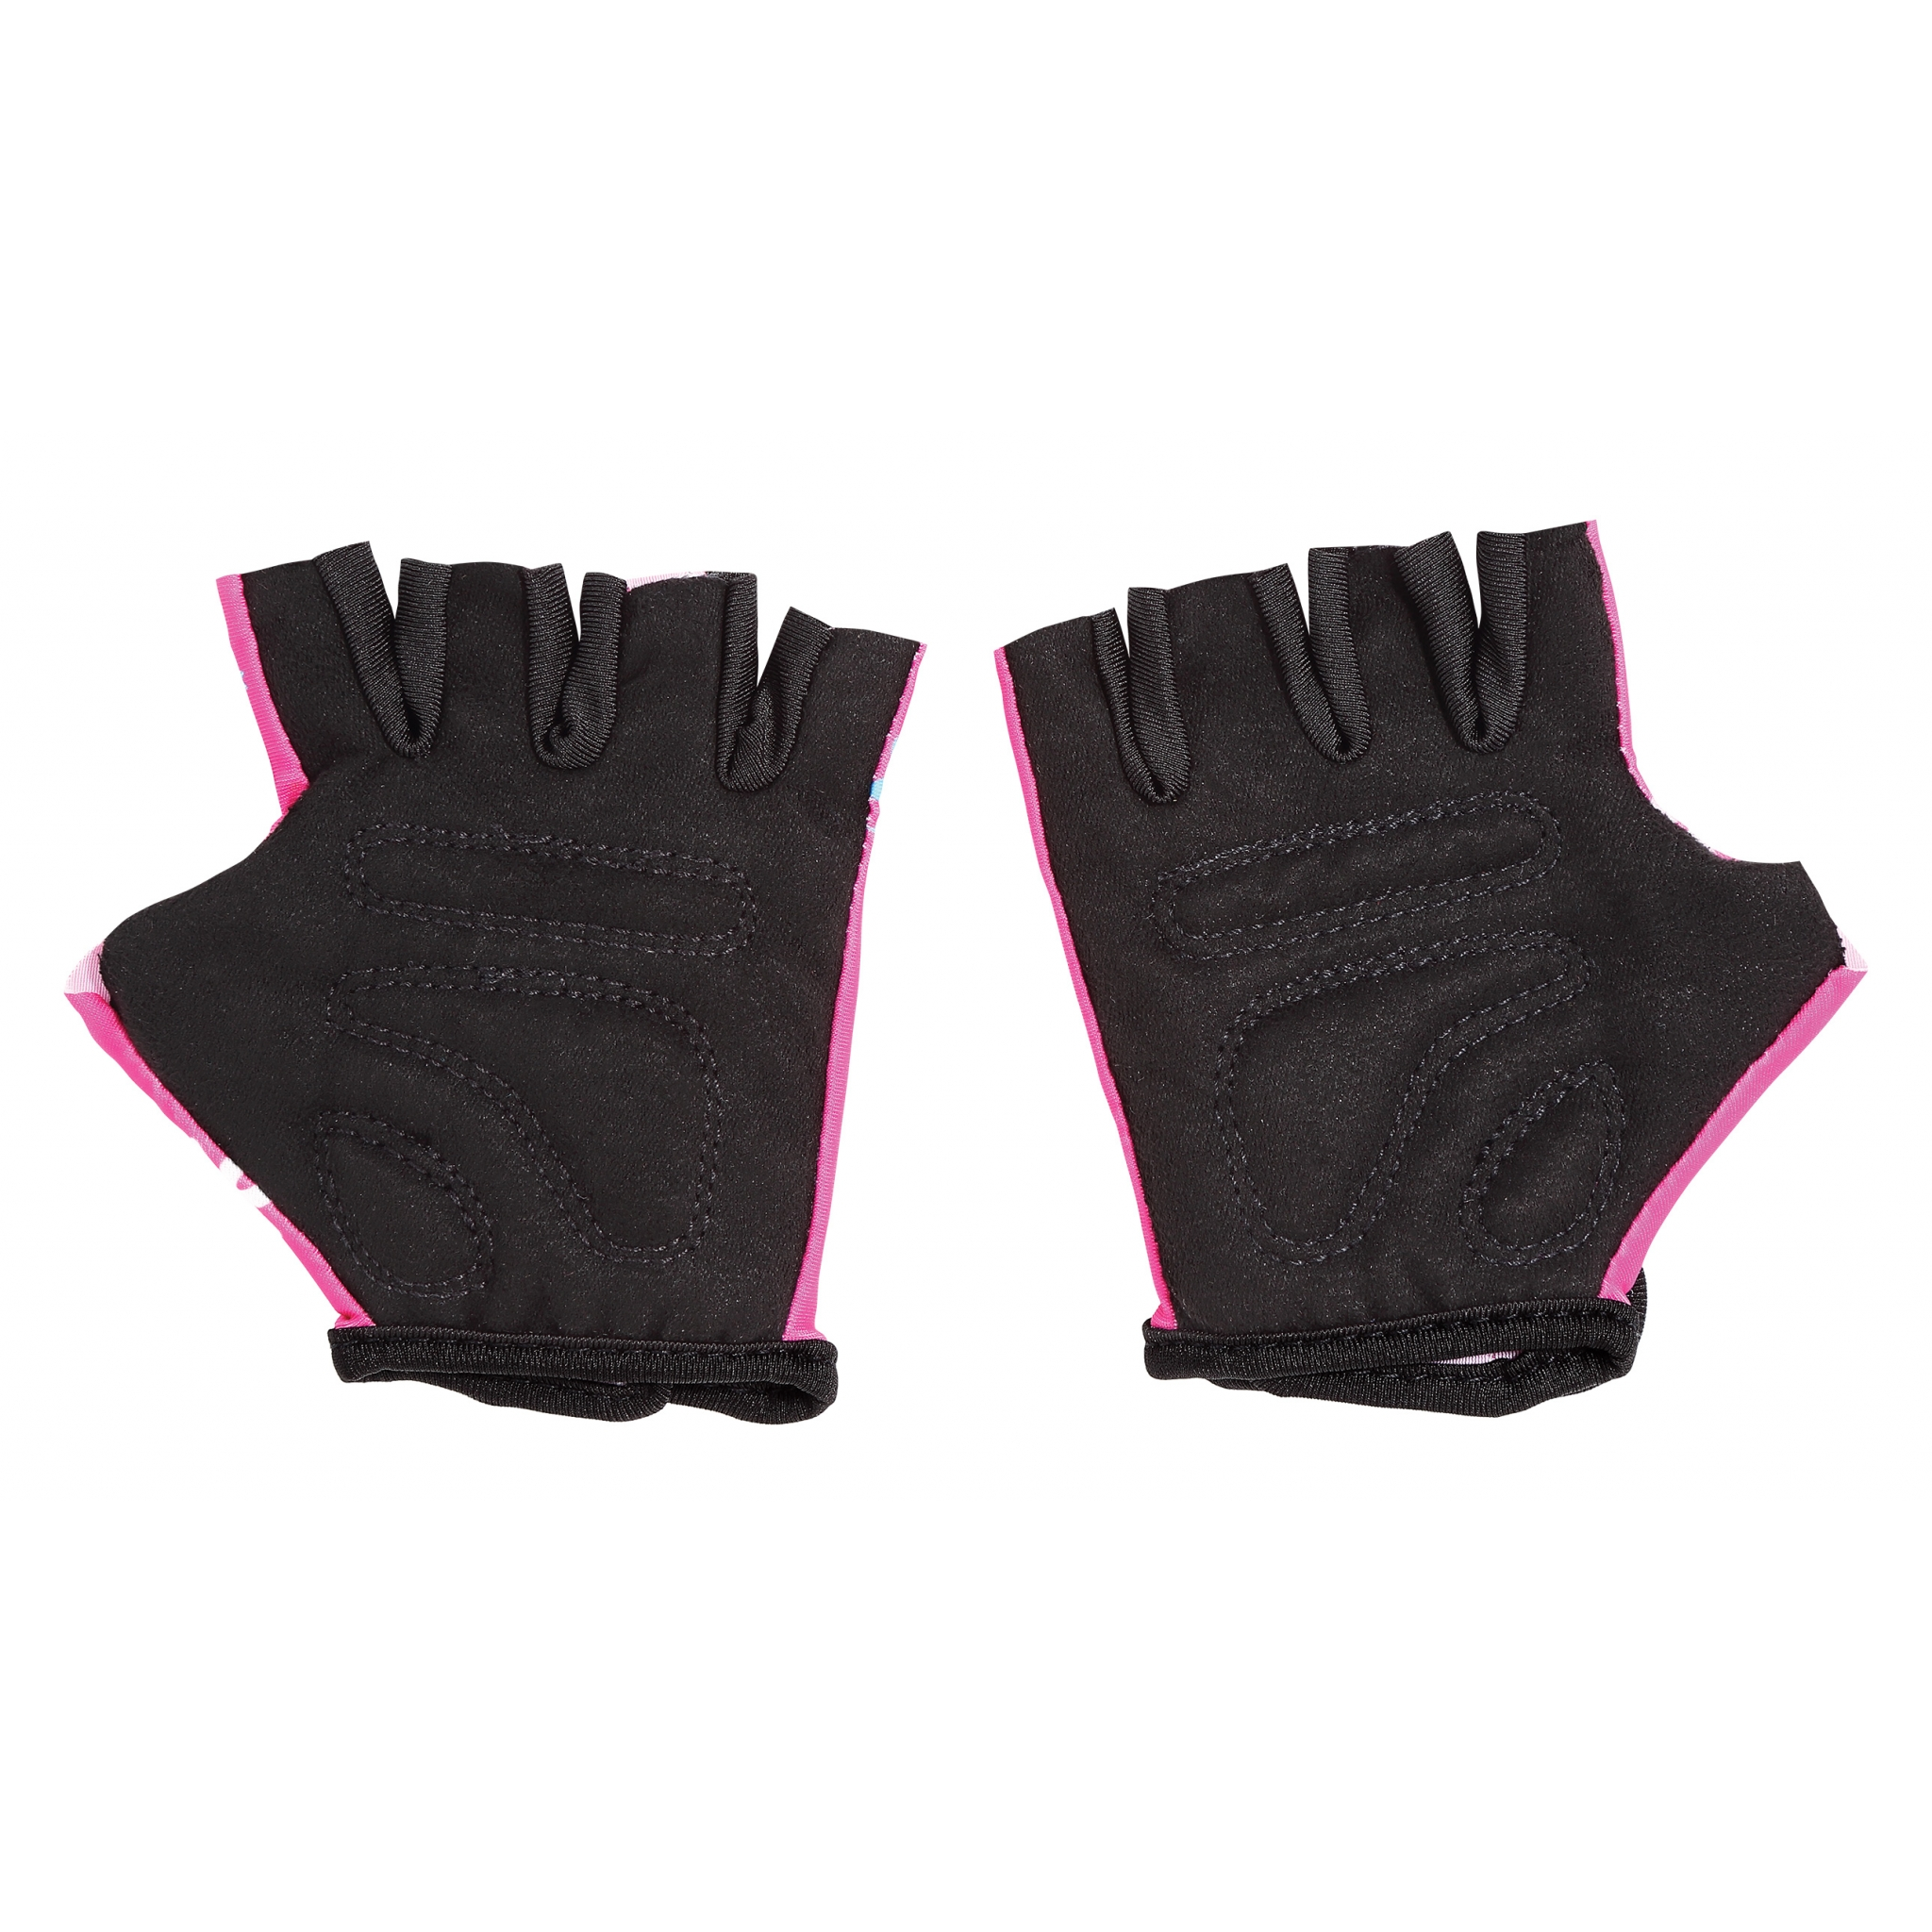 printed scooter gloves for toddlers - Globber